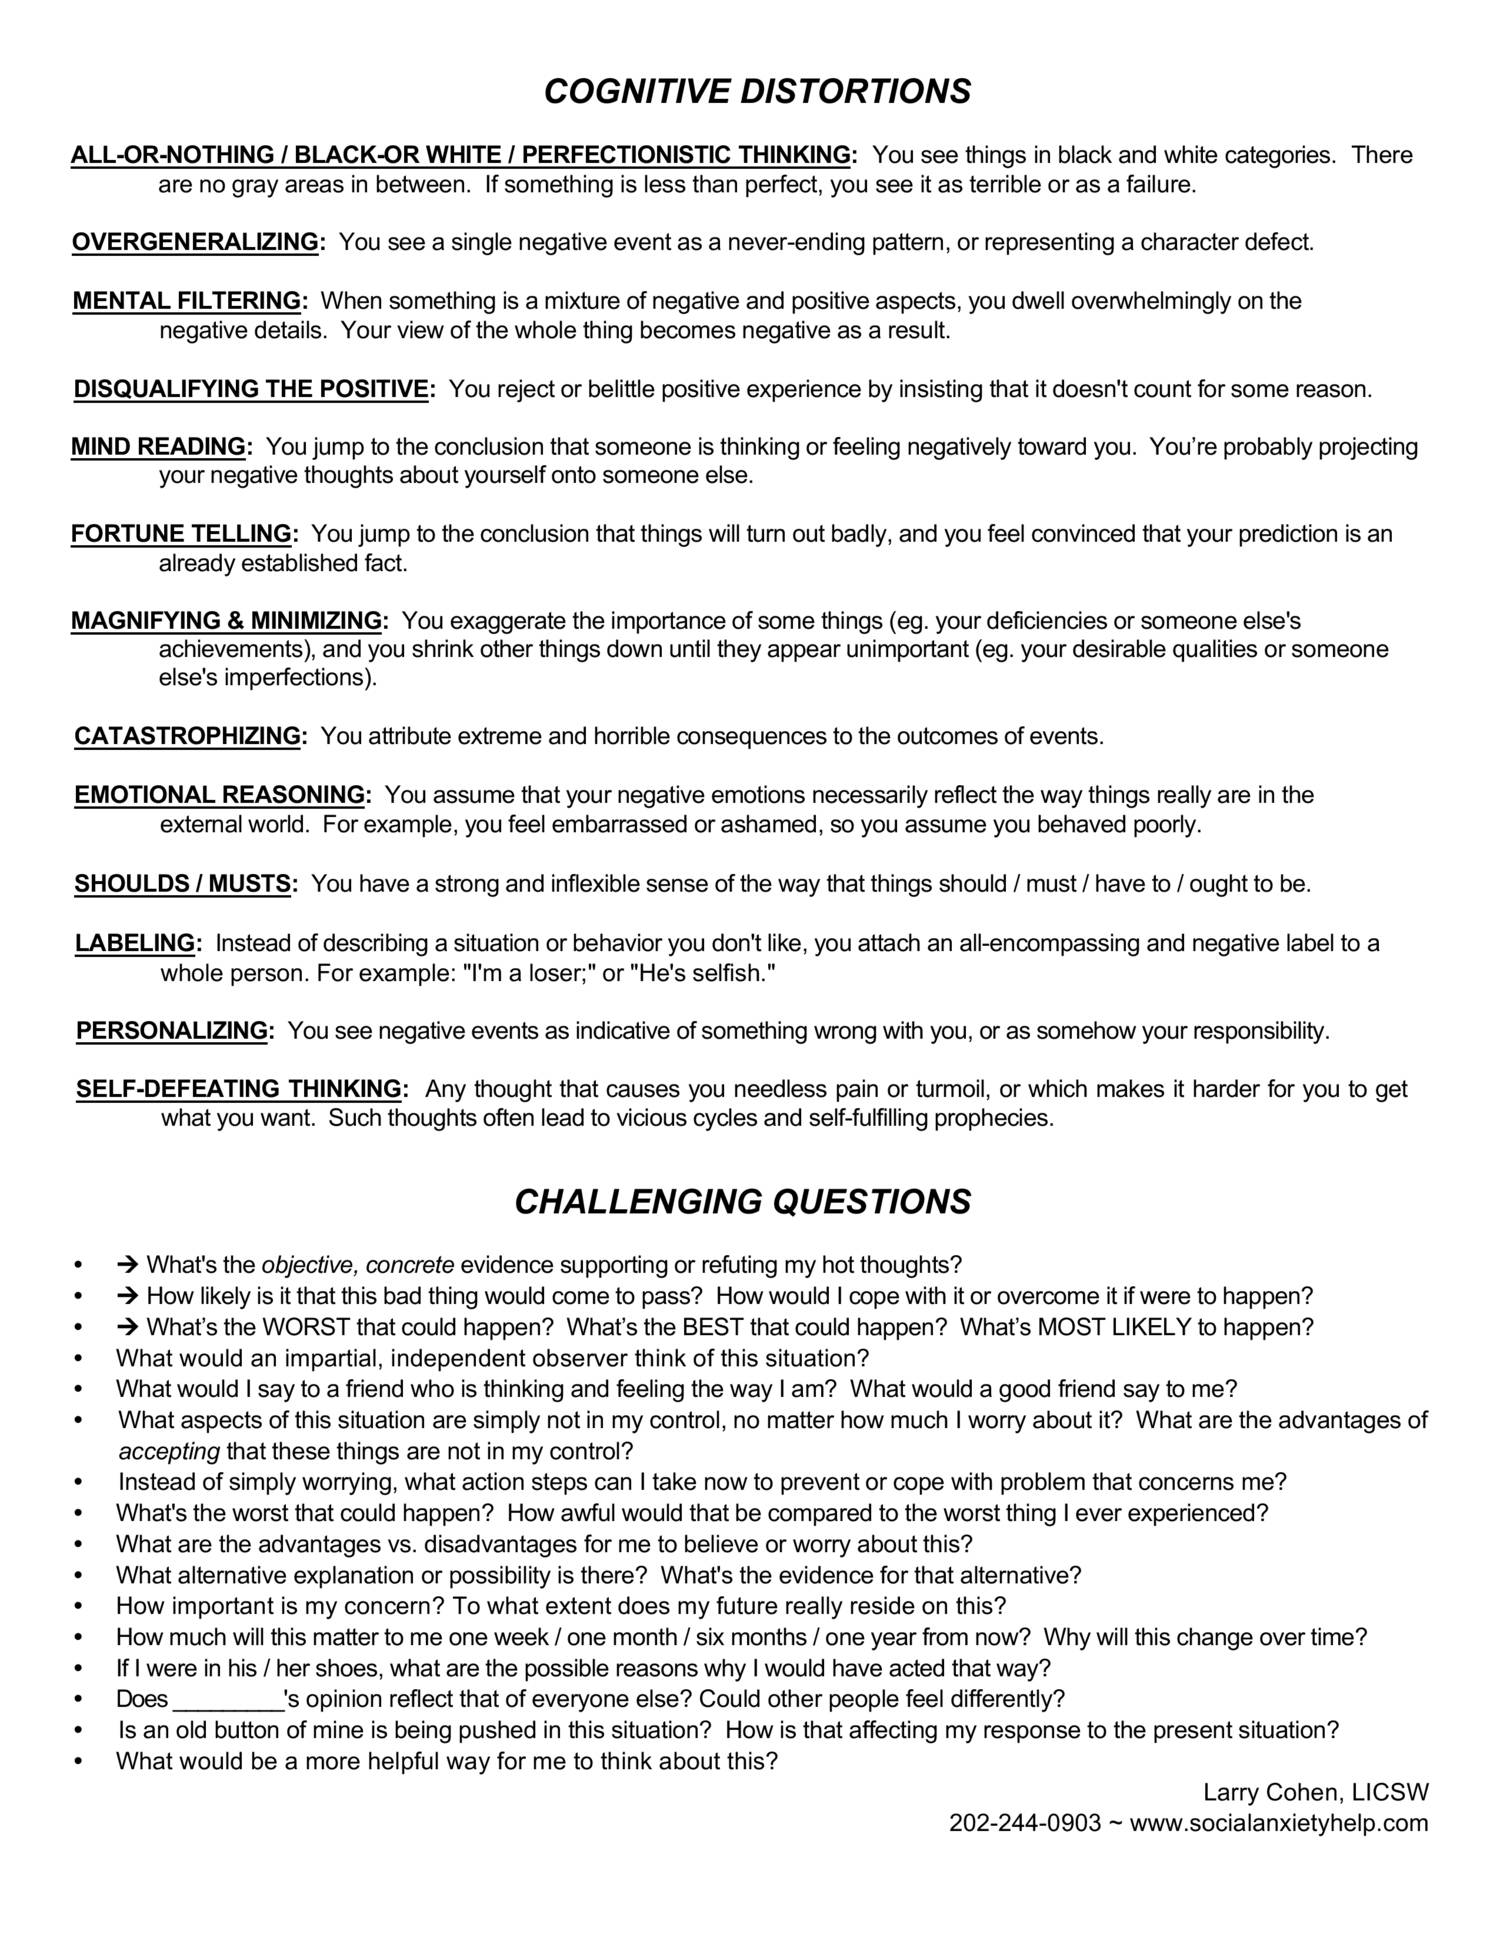 Cognitive Restructuring Worksheetspdf DocDroid – Seeking Safety Worksheets